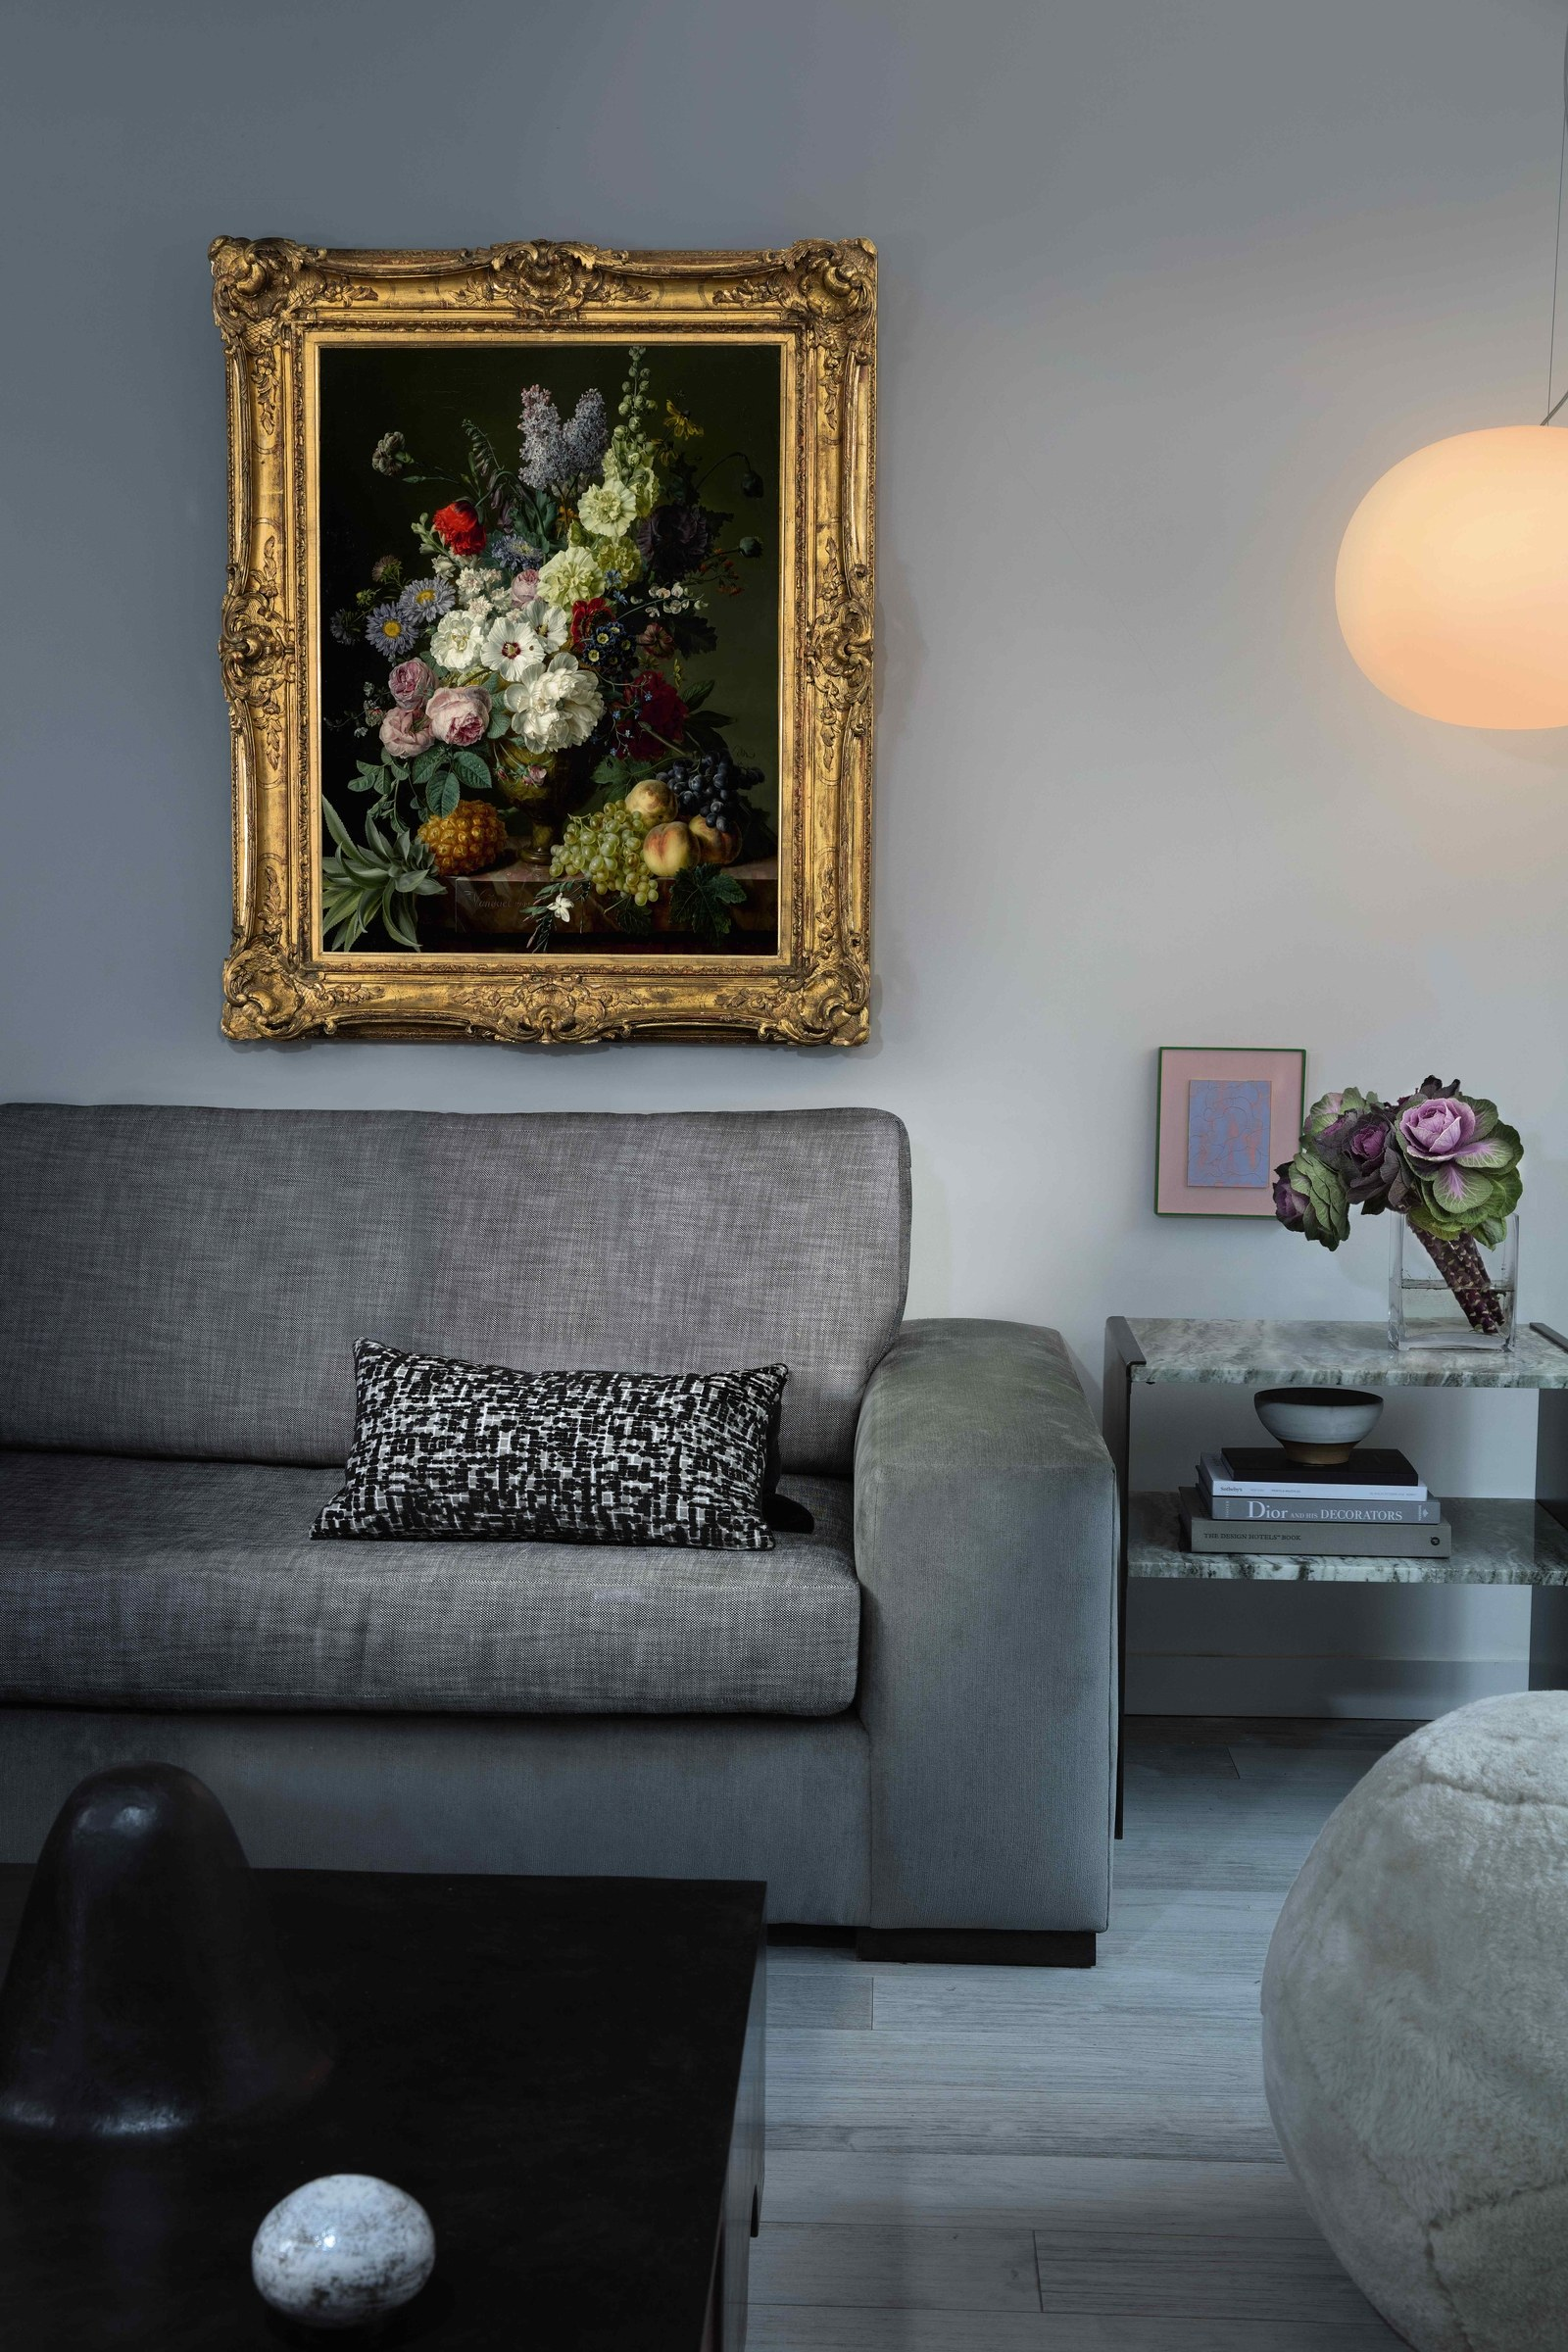 Old Masters' art in a home designed by an interior designer who was connected to Sotheby's by Wright Harvey of Sugarlift